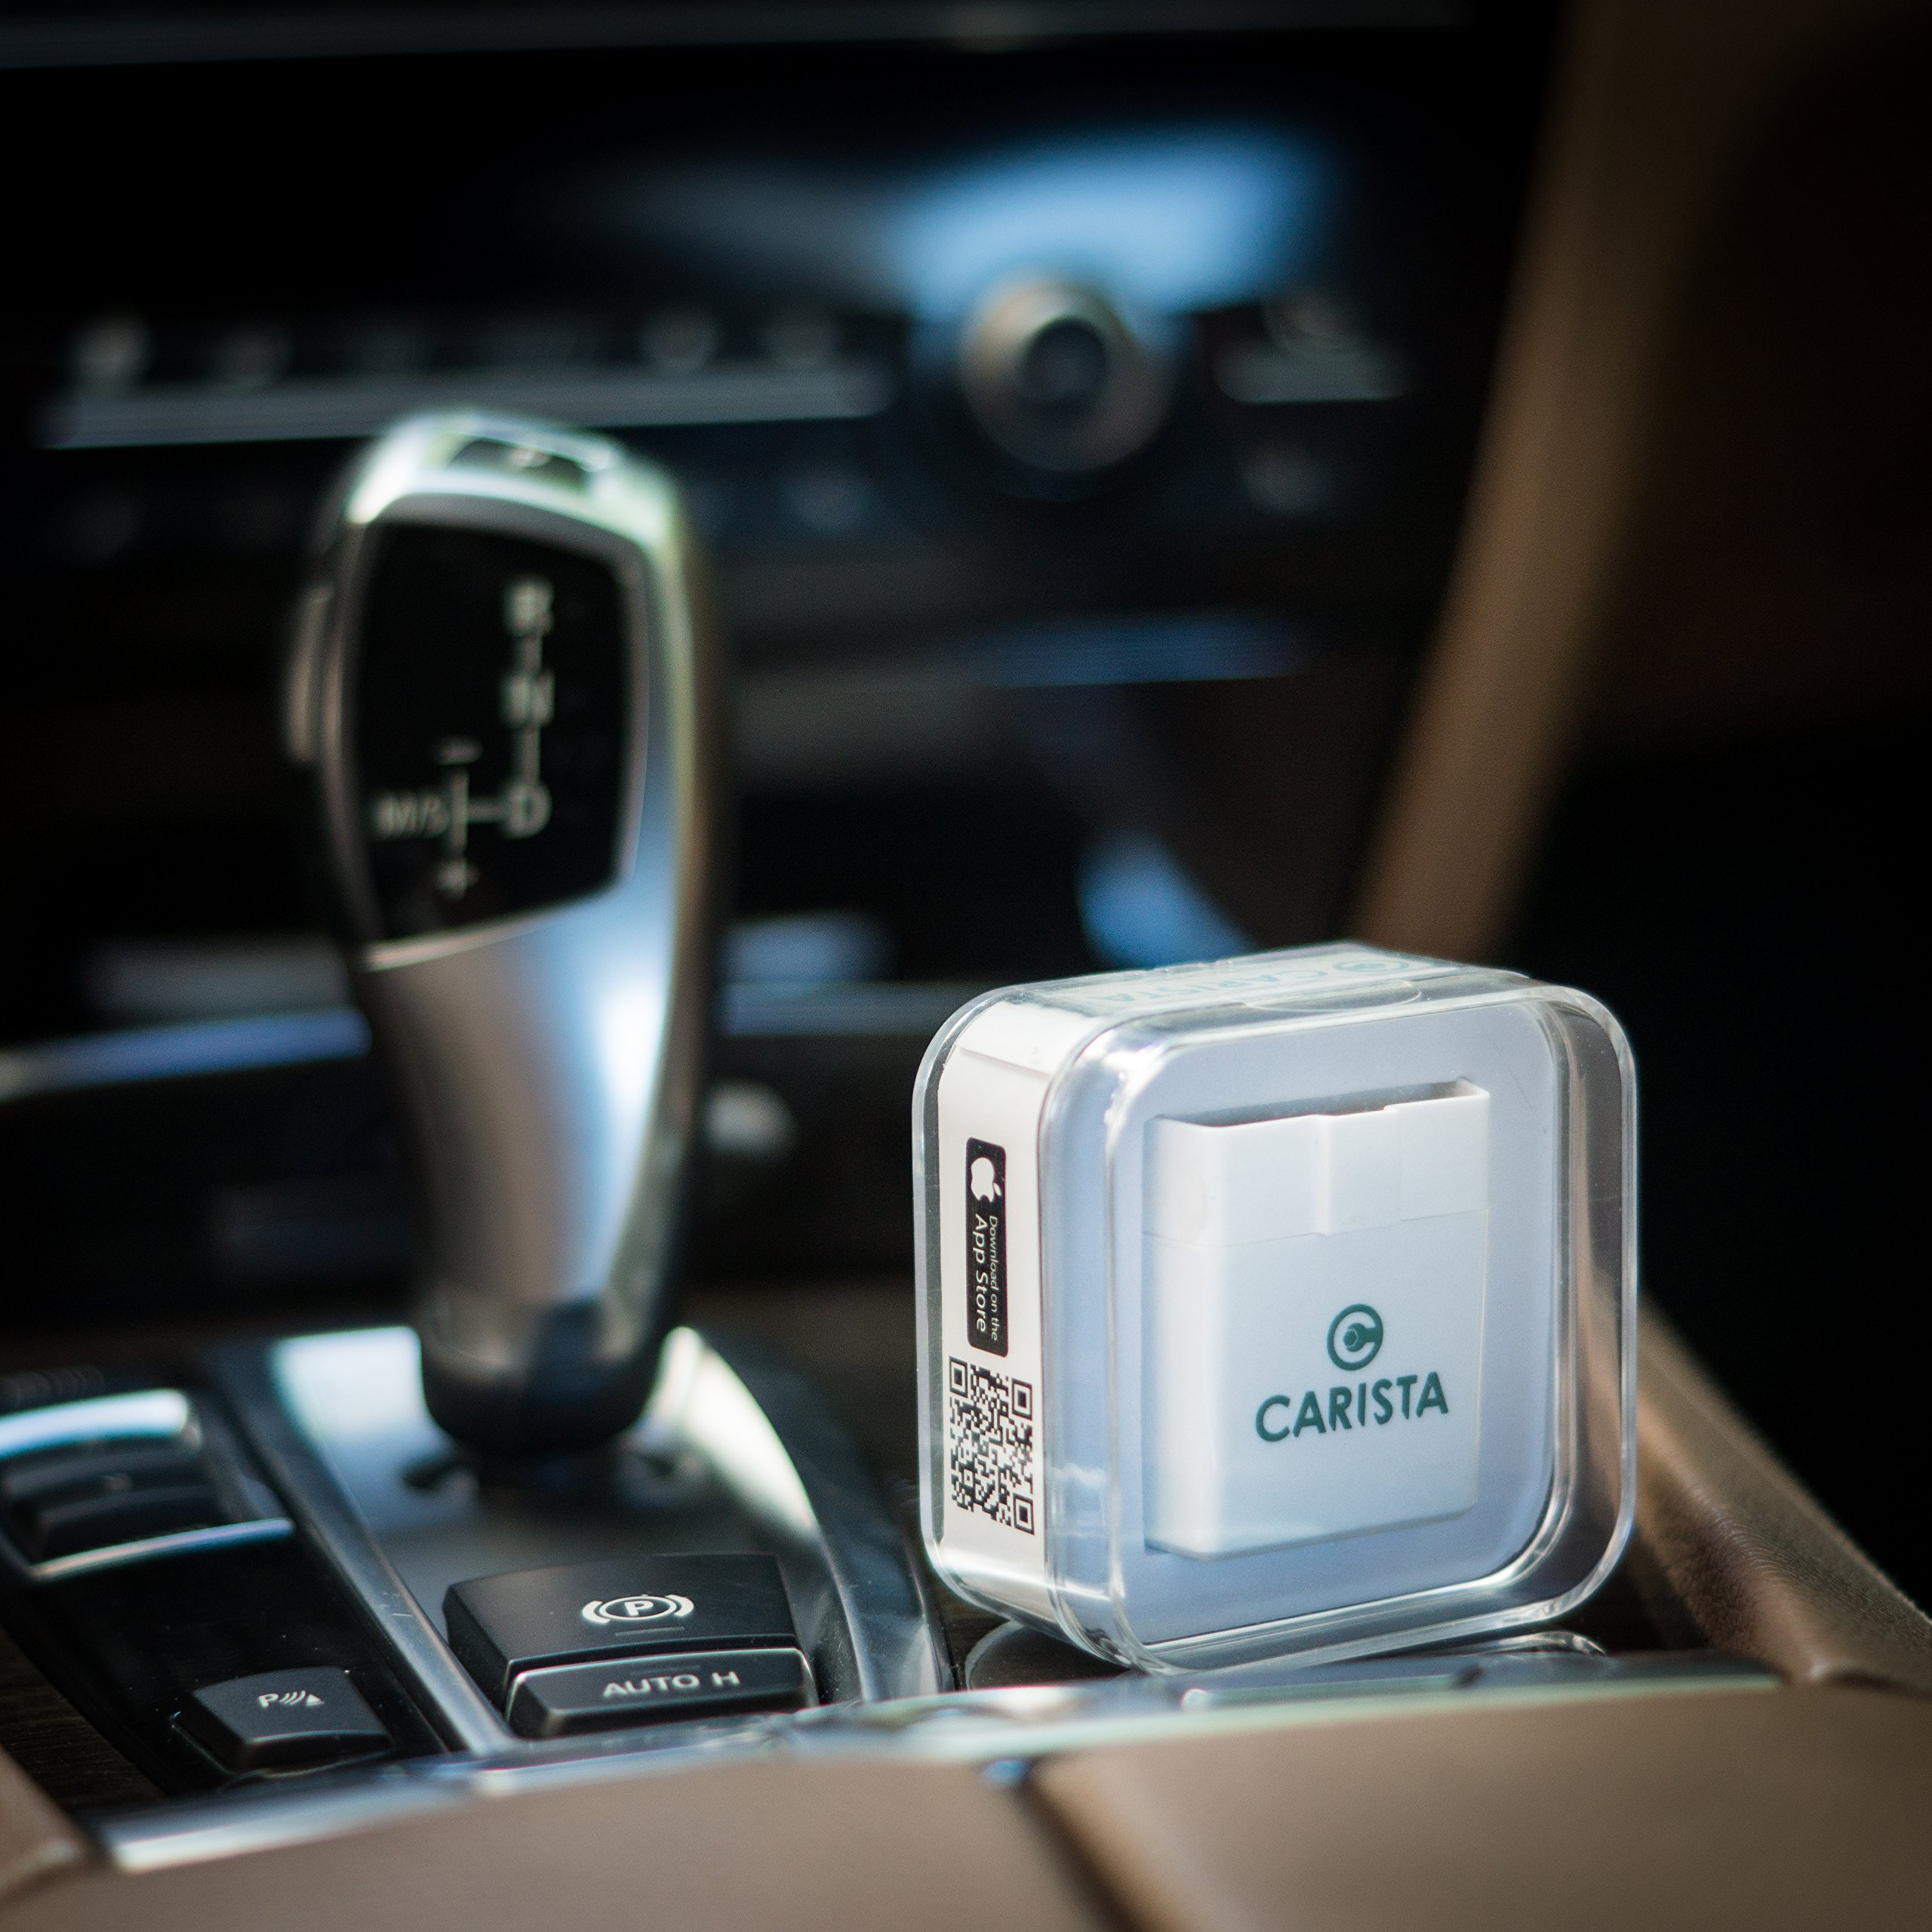 Carista is an OBD2 adapter that is free for both the Android and iOs devices.